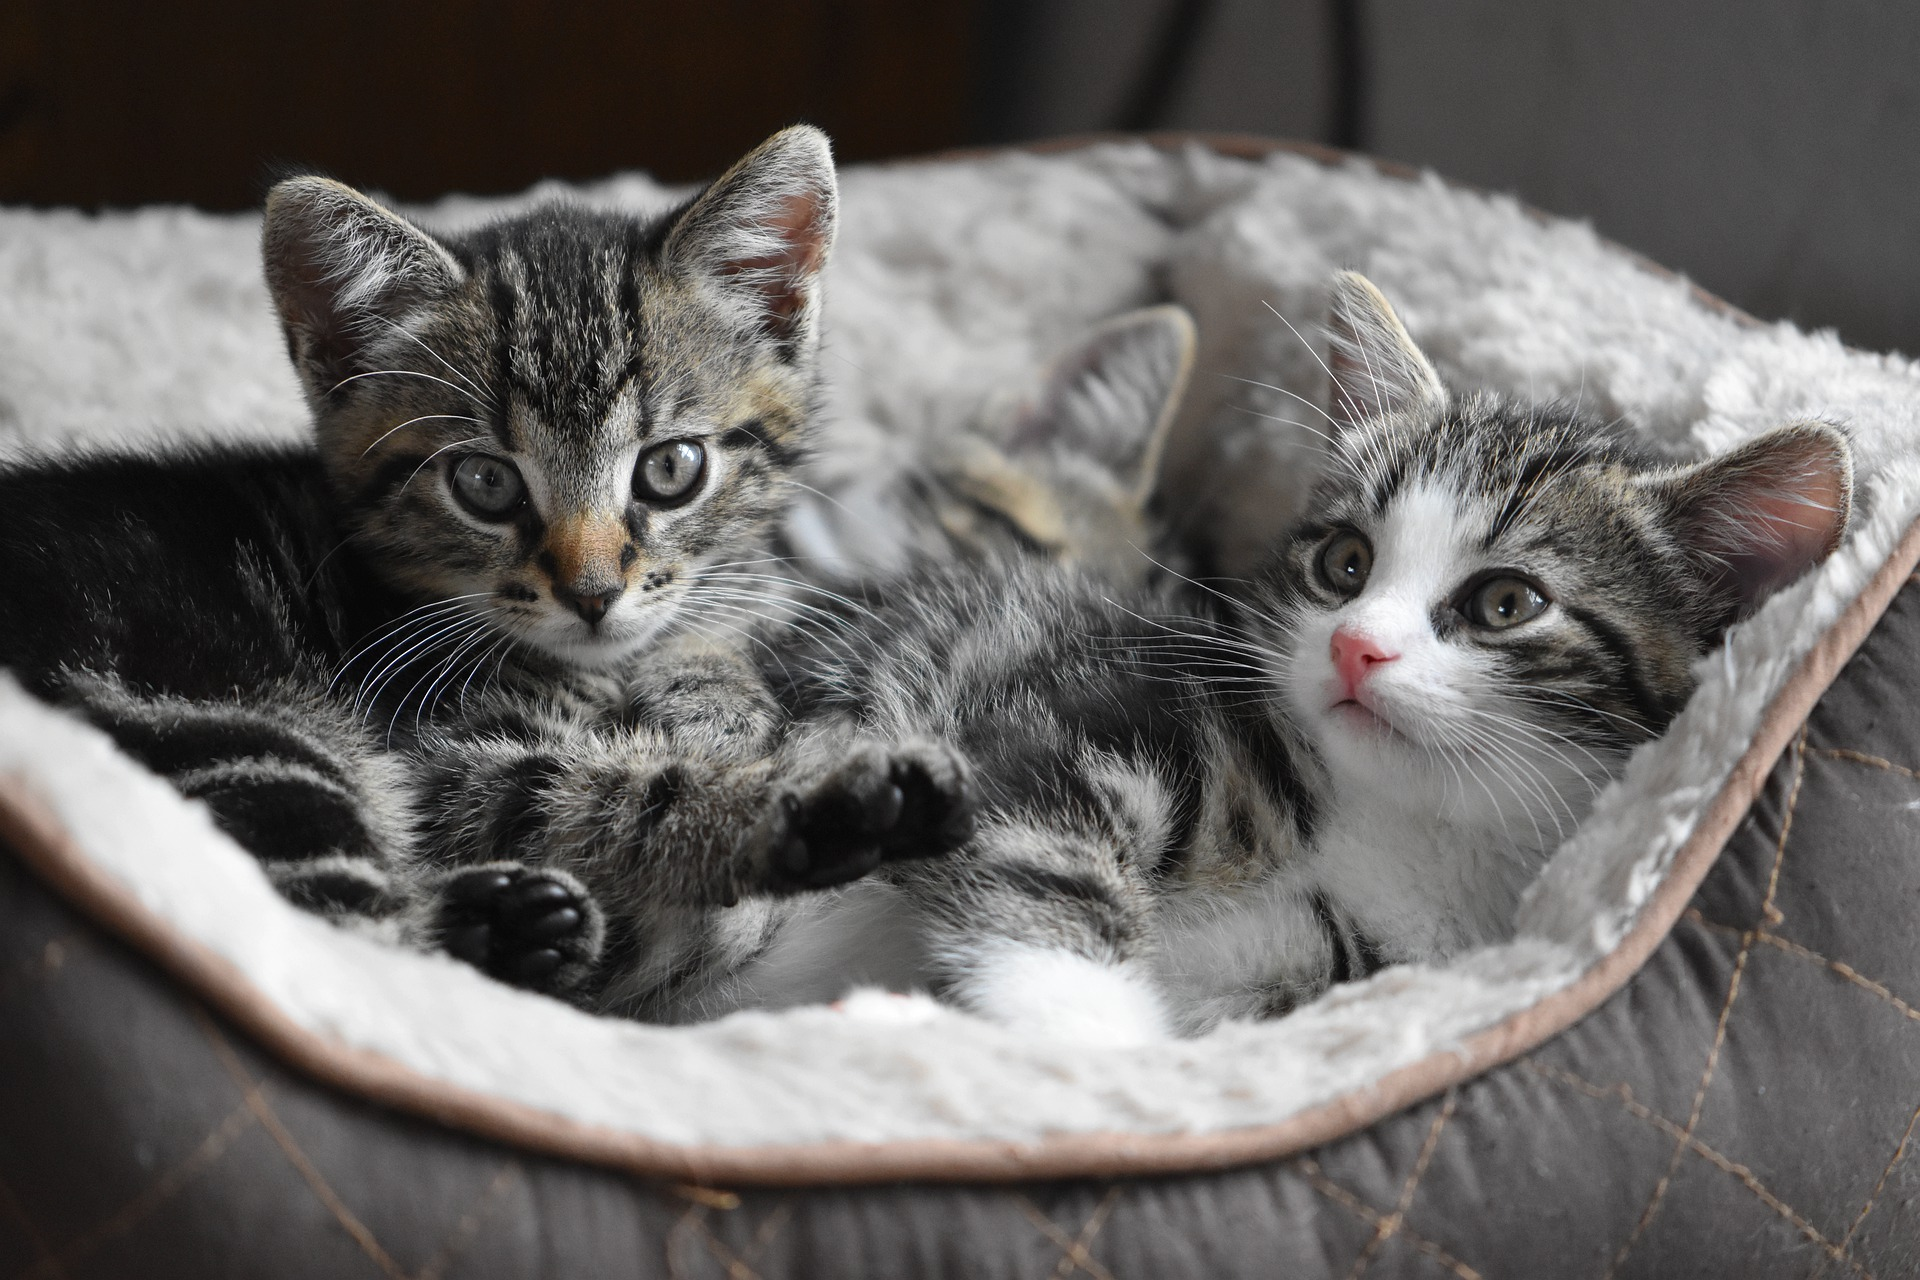 young kittens in a cat bed